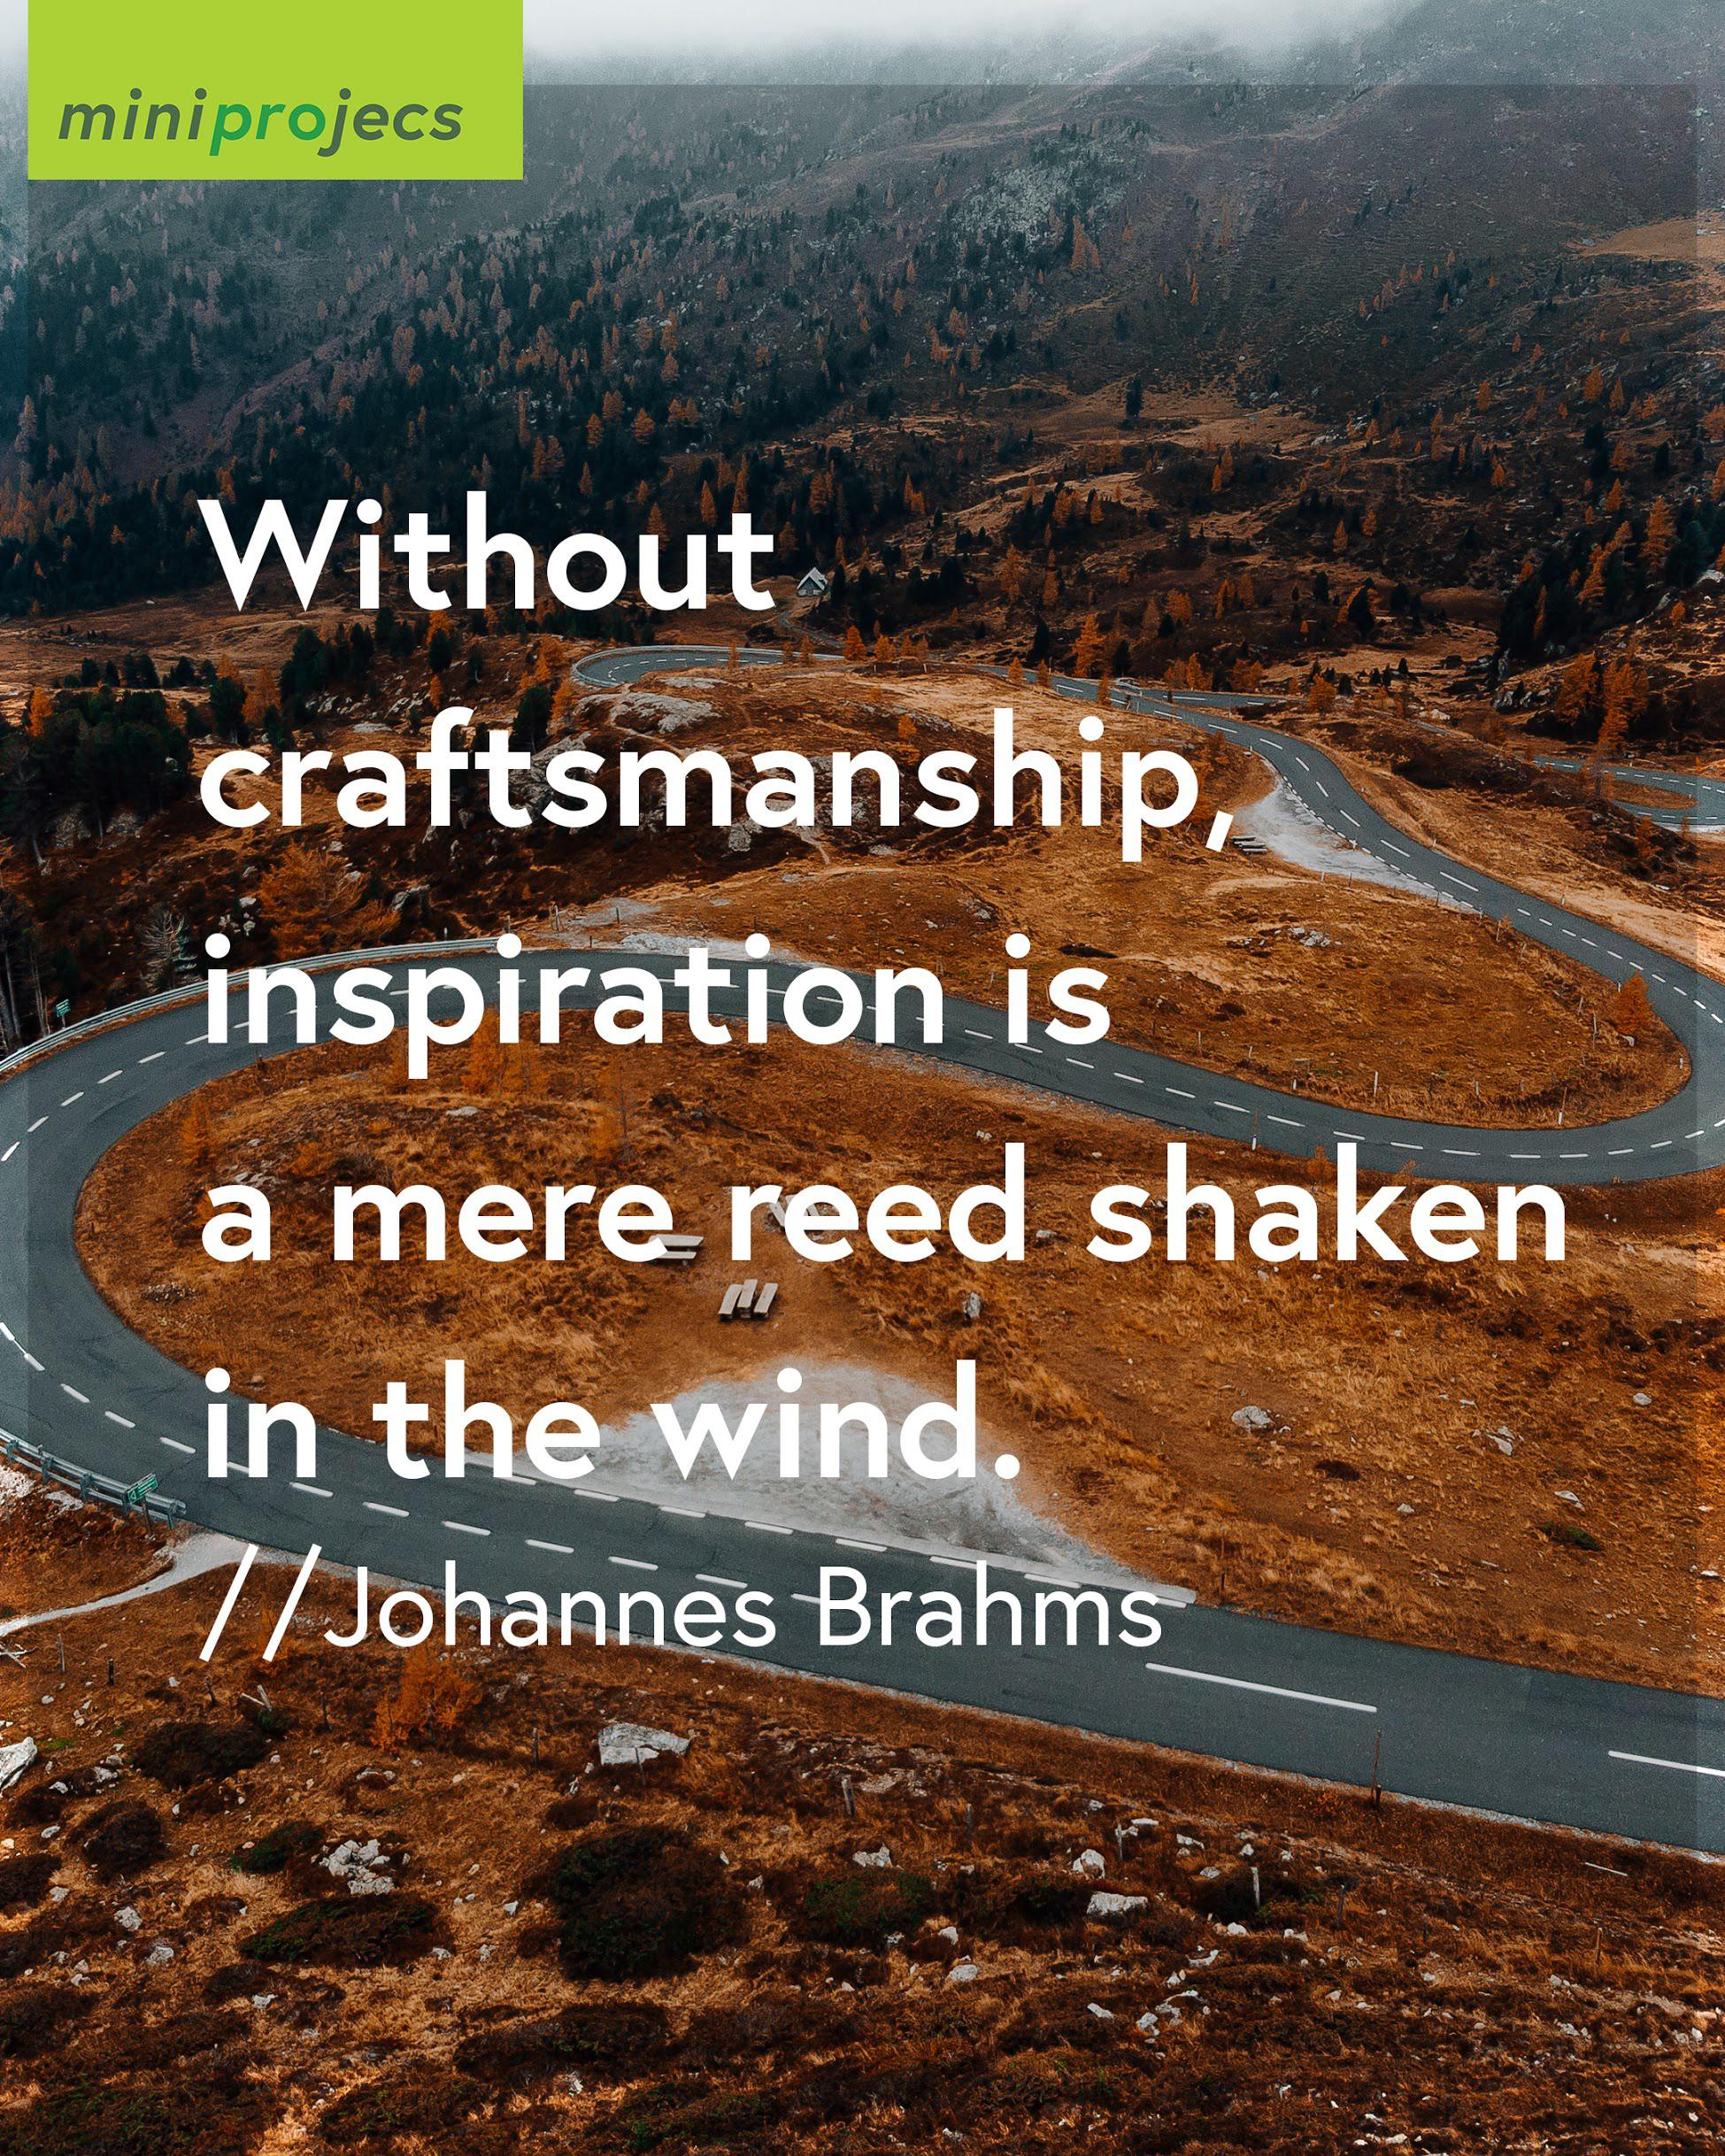 Without craftsmanship, inspiration is a mere reed shaken in the wind – Johannes Brahms [1080×1350] credit @miniprojecs